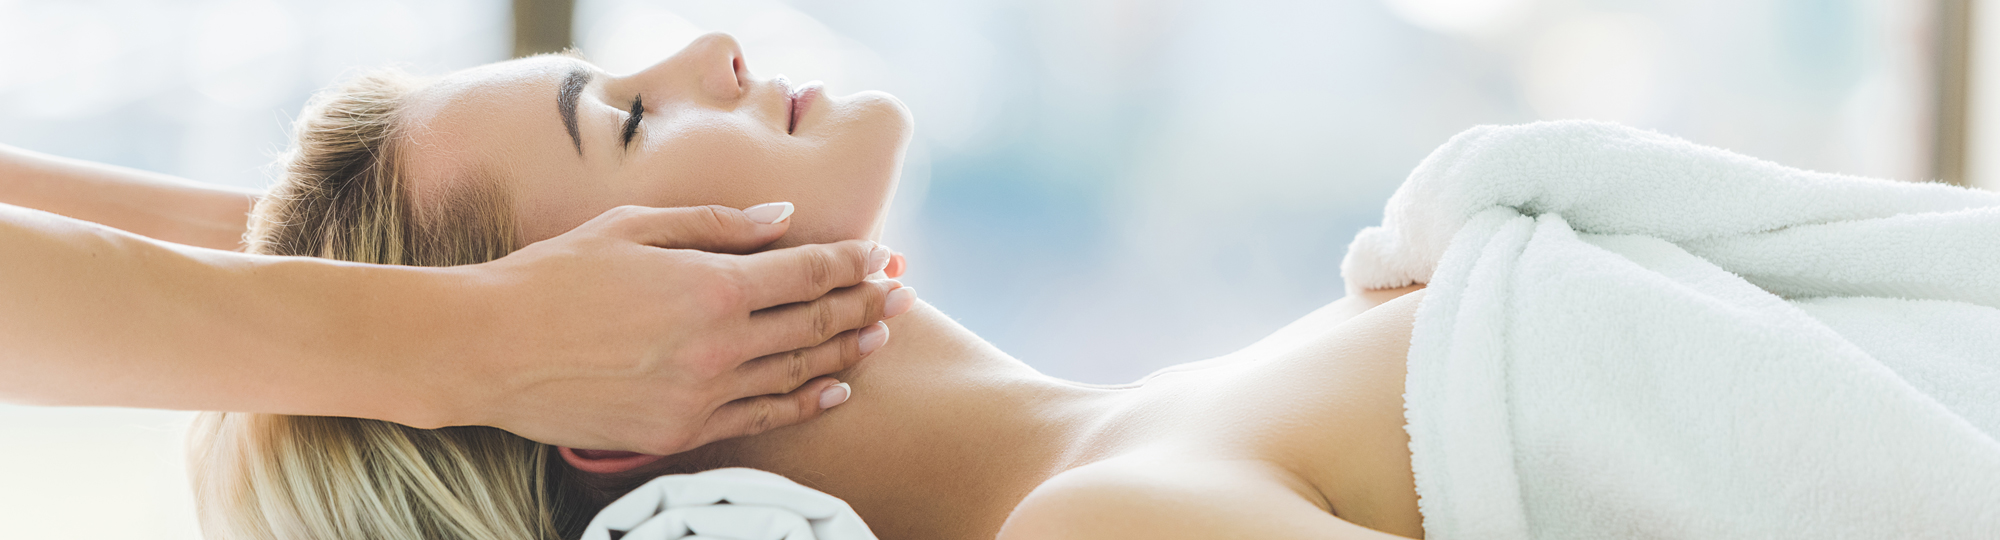 Massage Therapy in Andover MN